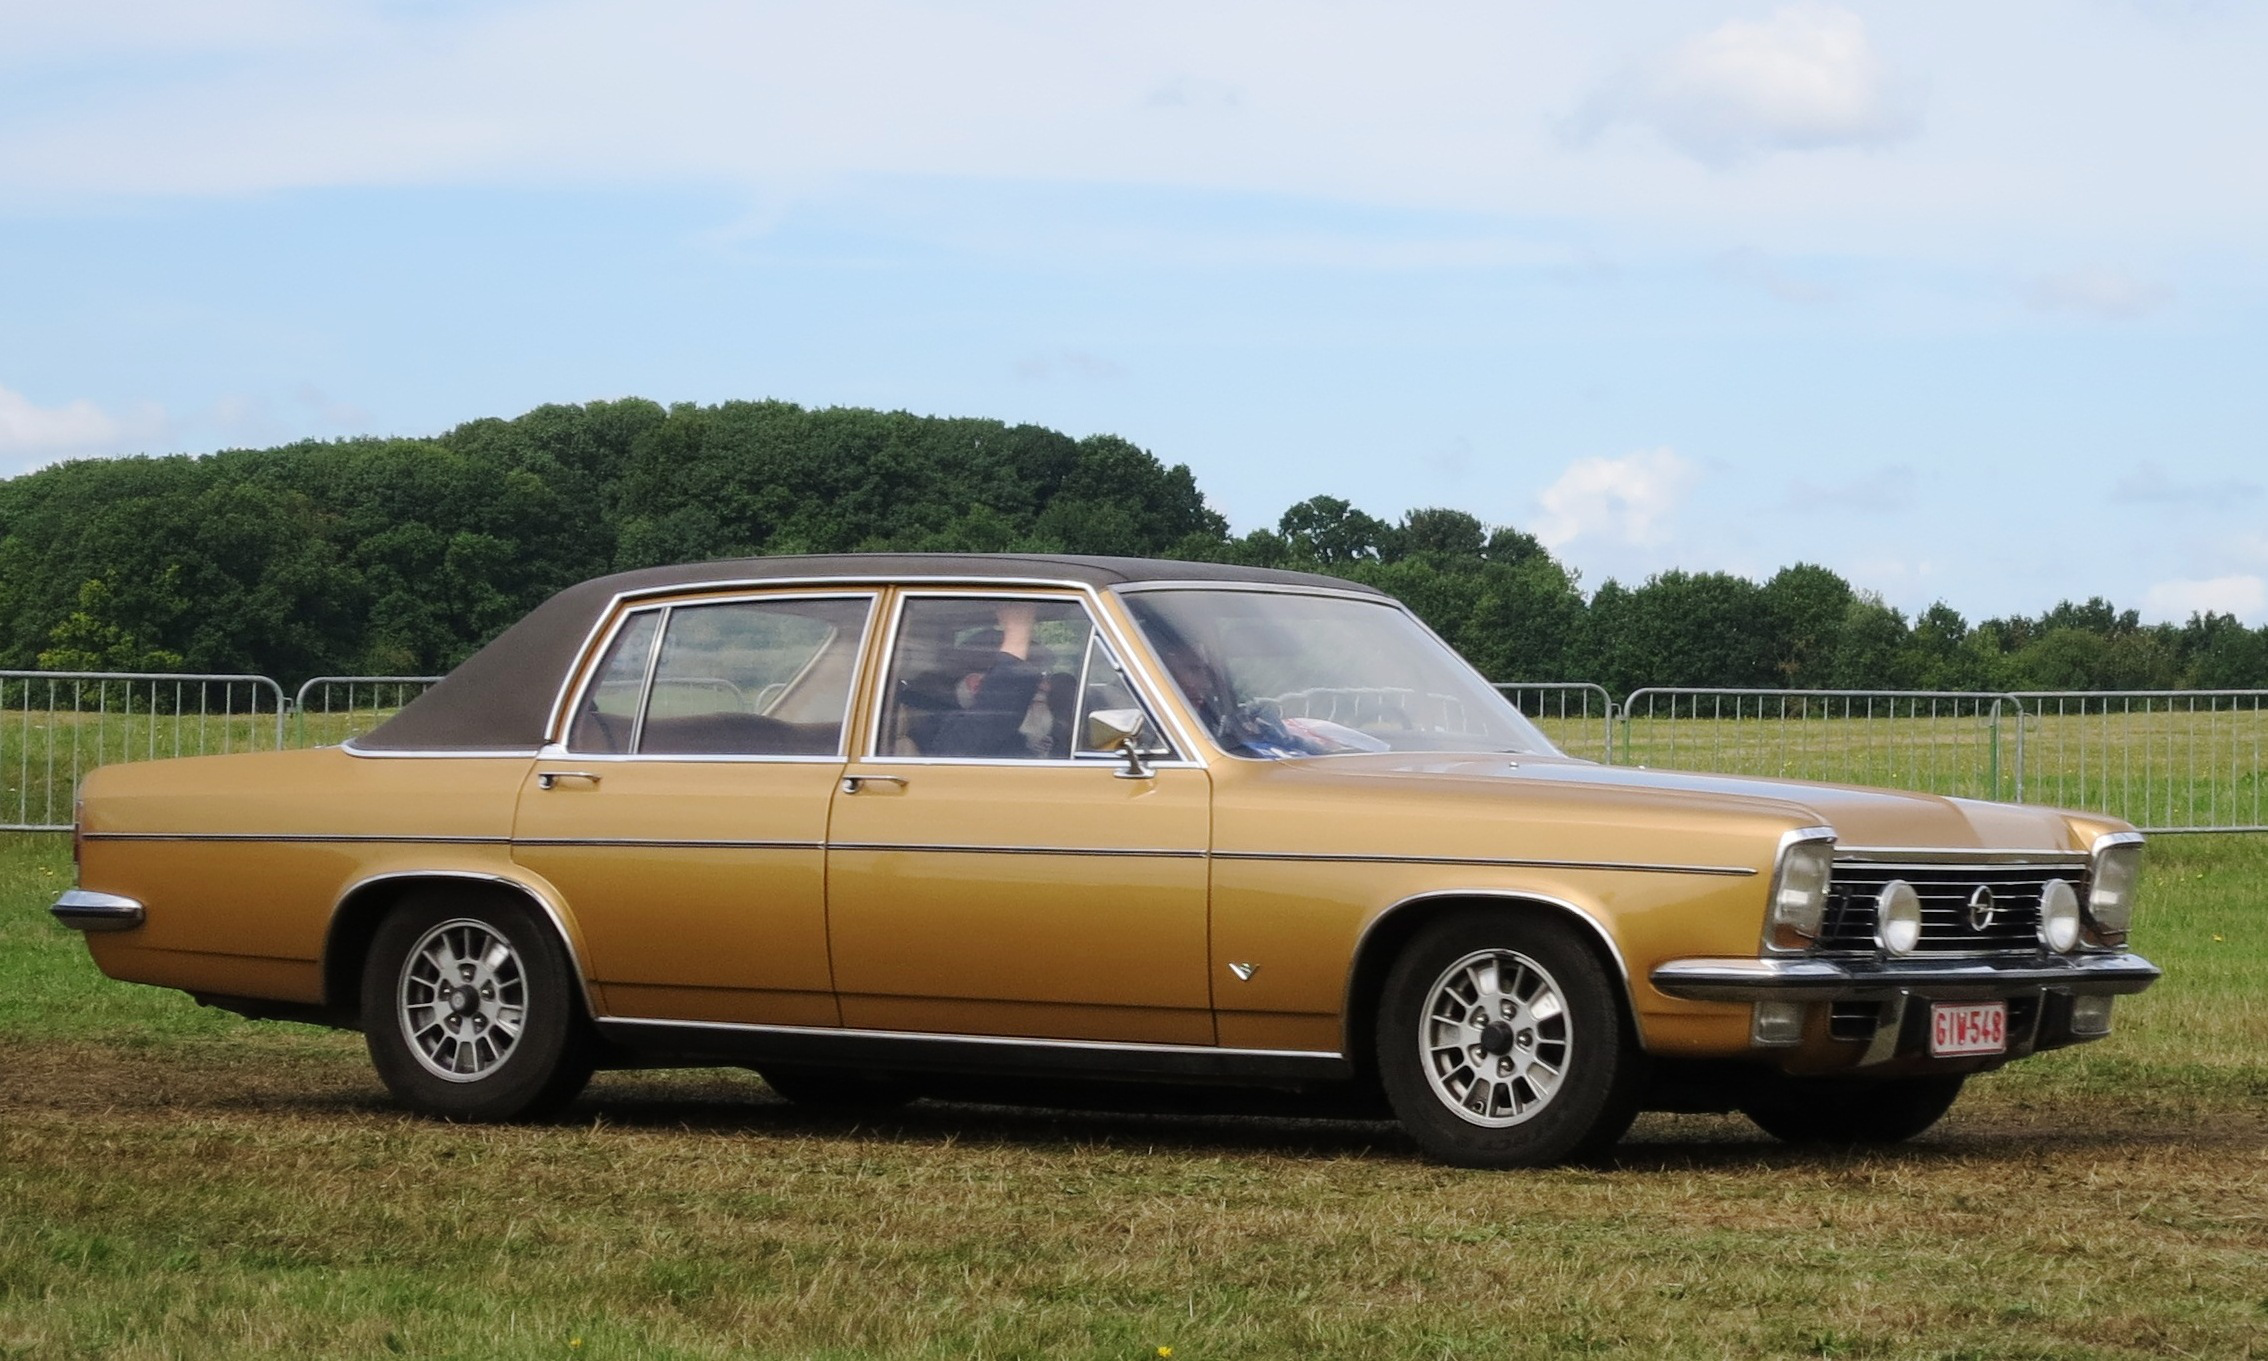 Build Your Own Ford >> File:Opel Diplomat V8 ca 1975 5354cc in profile.JPG - Wikimedia Commons